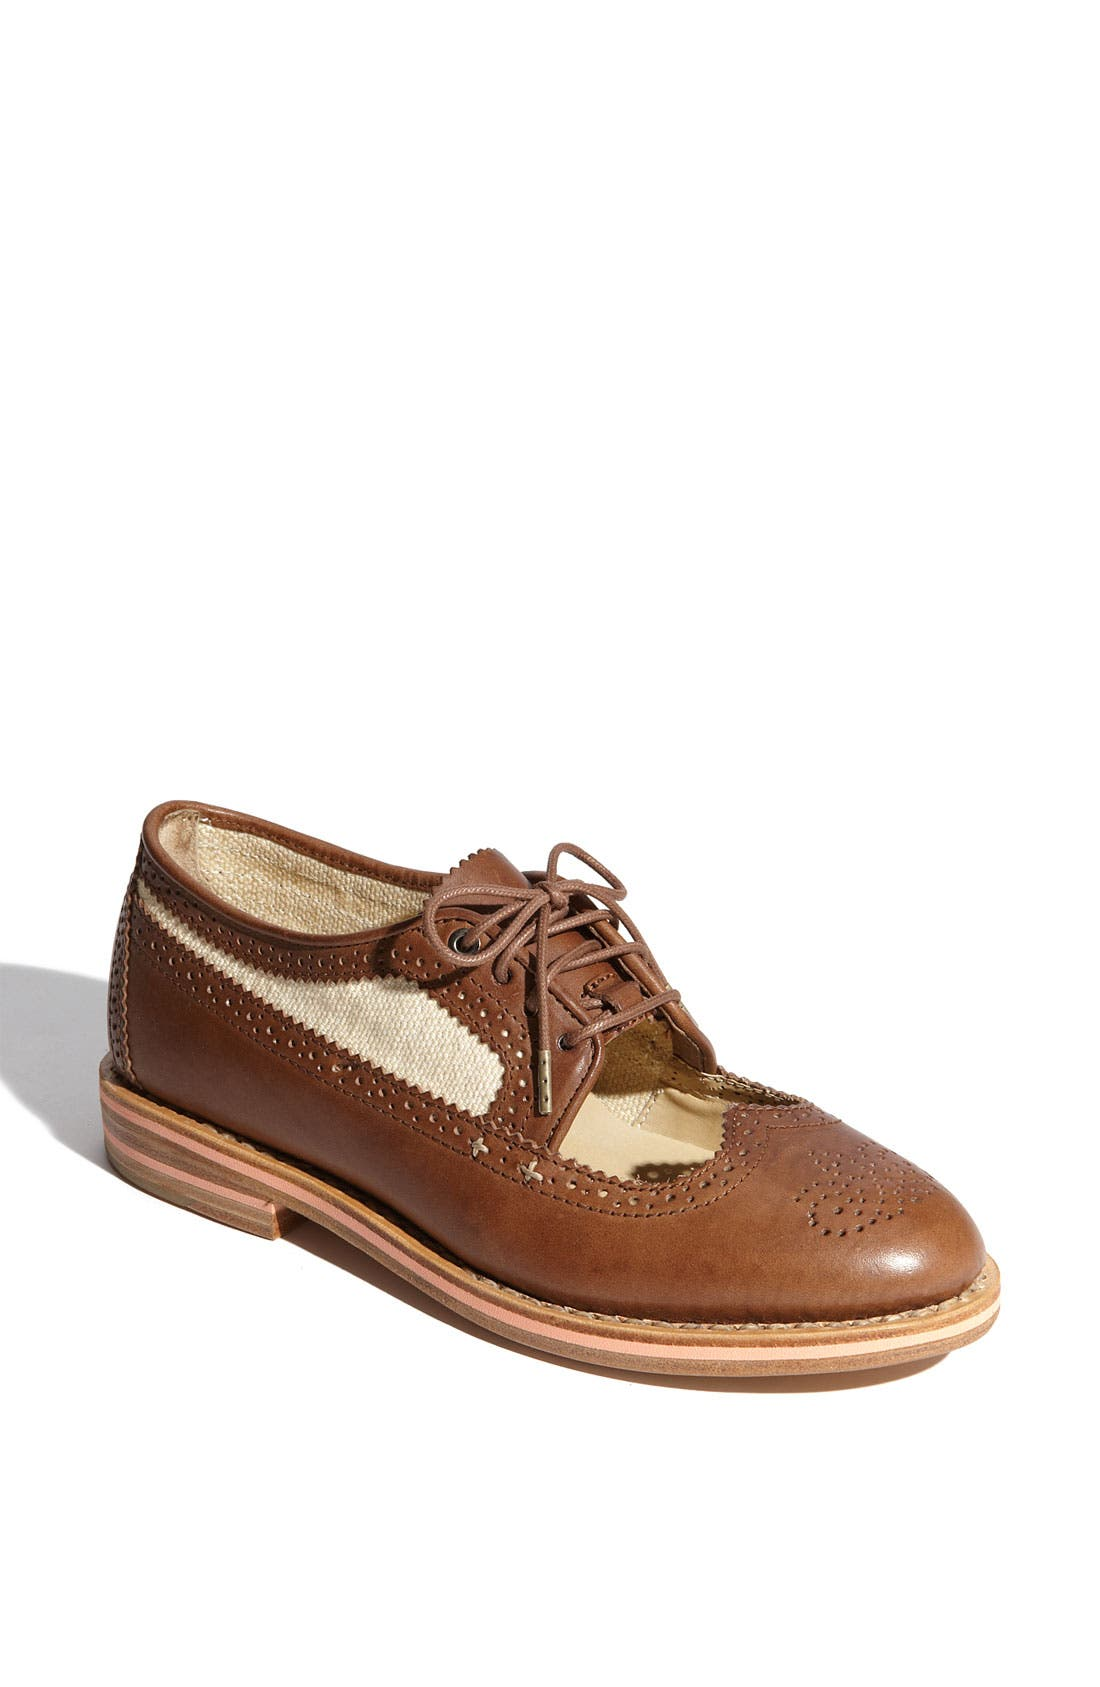 Main Image - rag & bone 'Bradford' Brogue Oxford